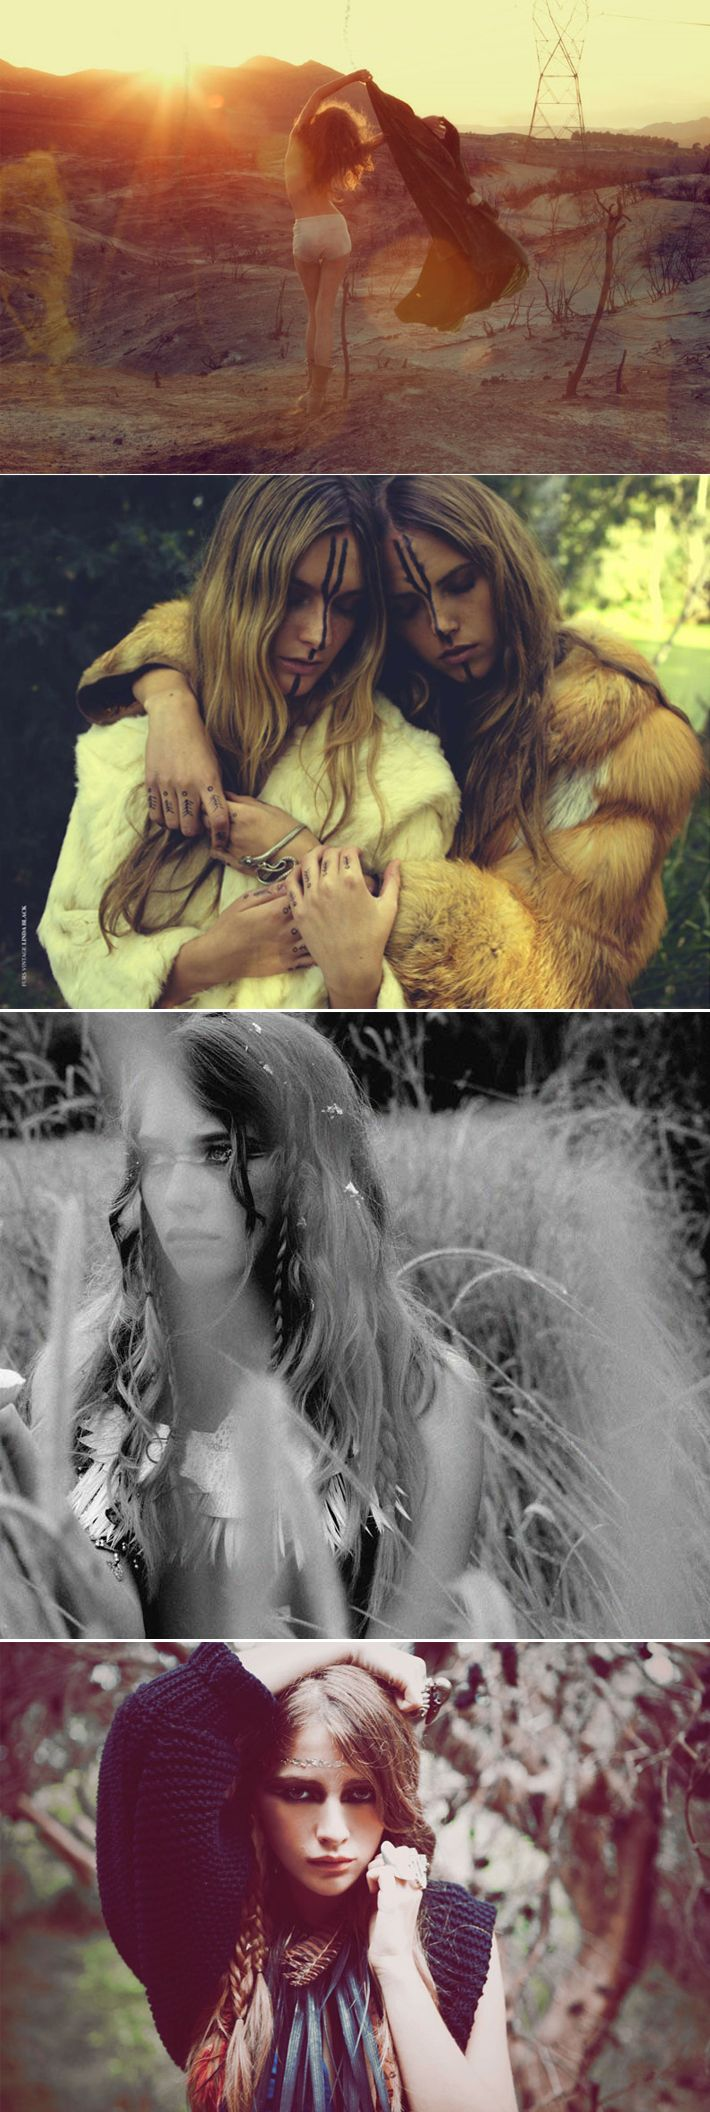 sister photoshoot idea, beautiful-brings me back to my Indian days:)